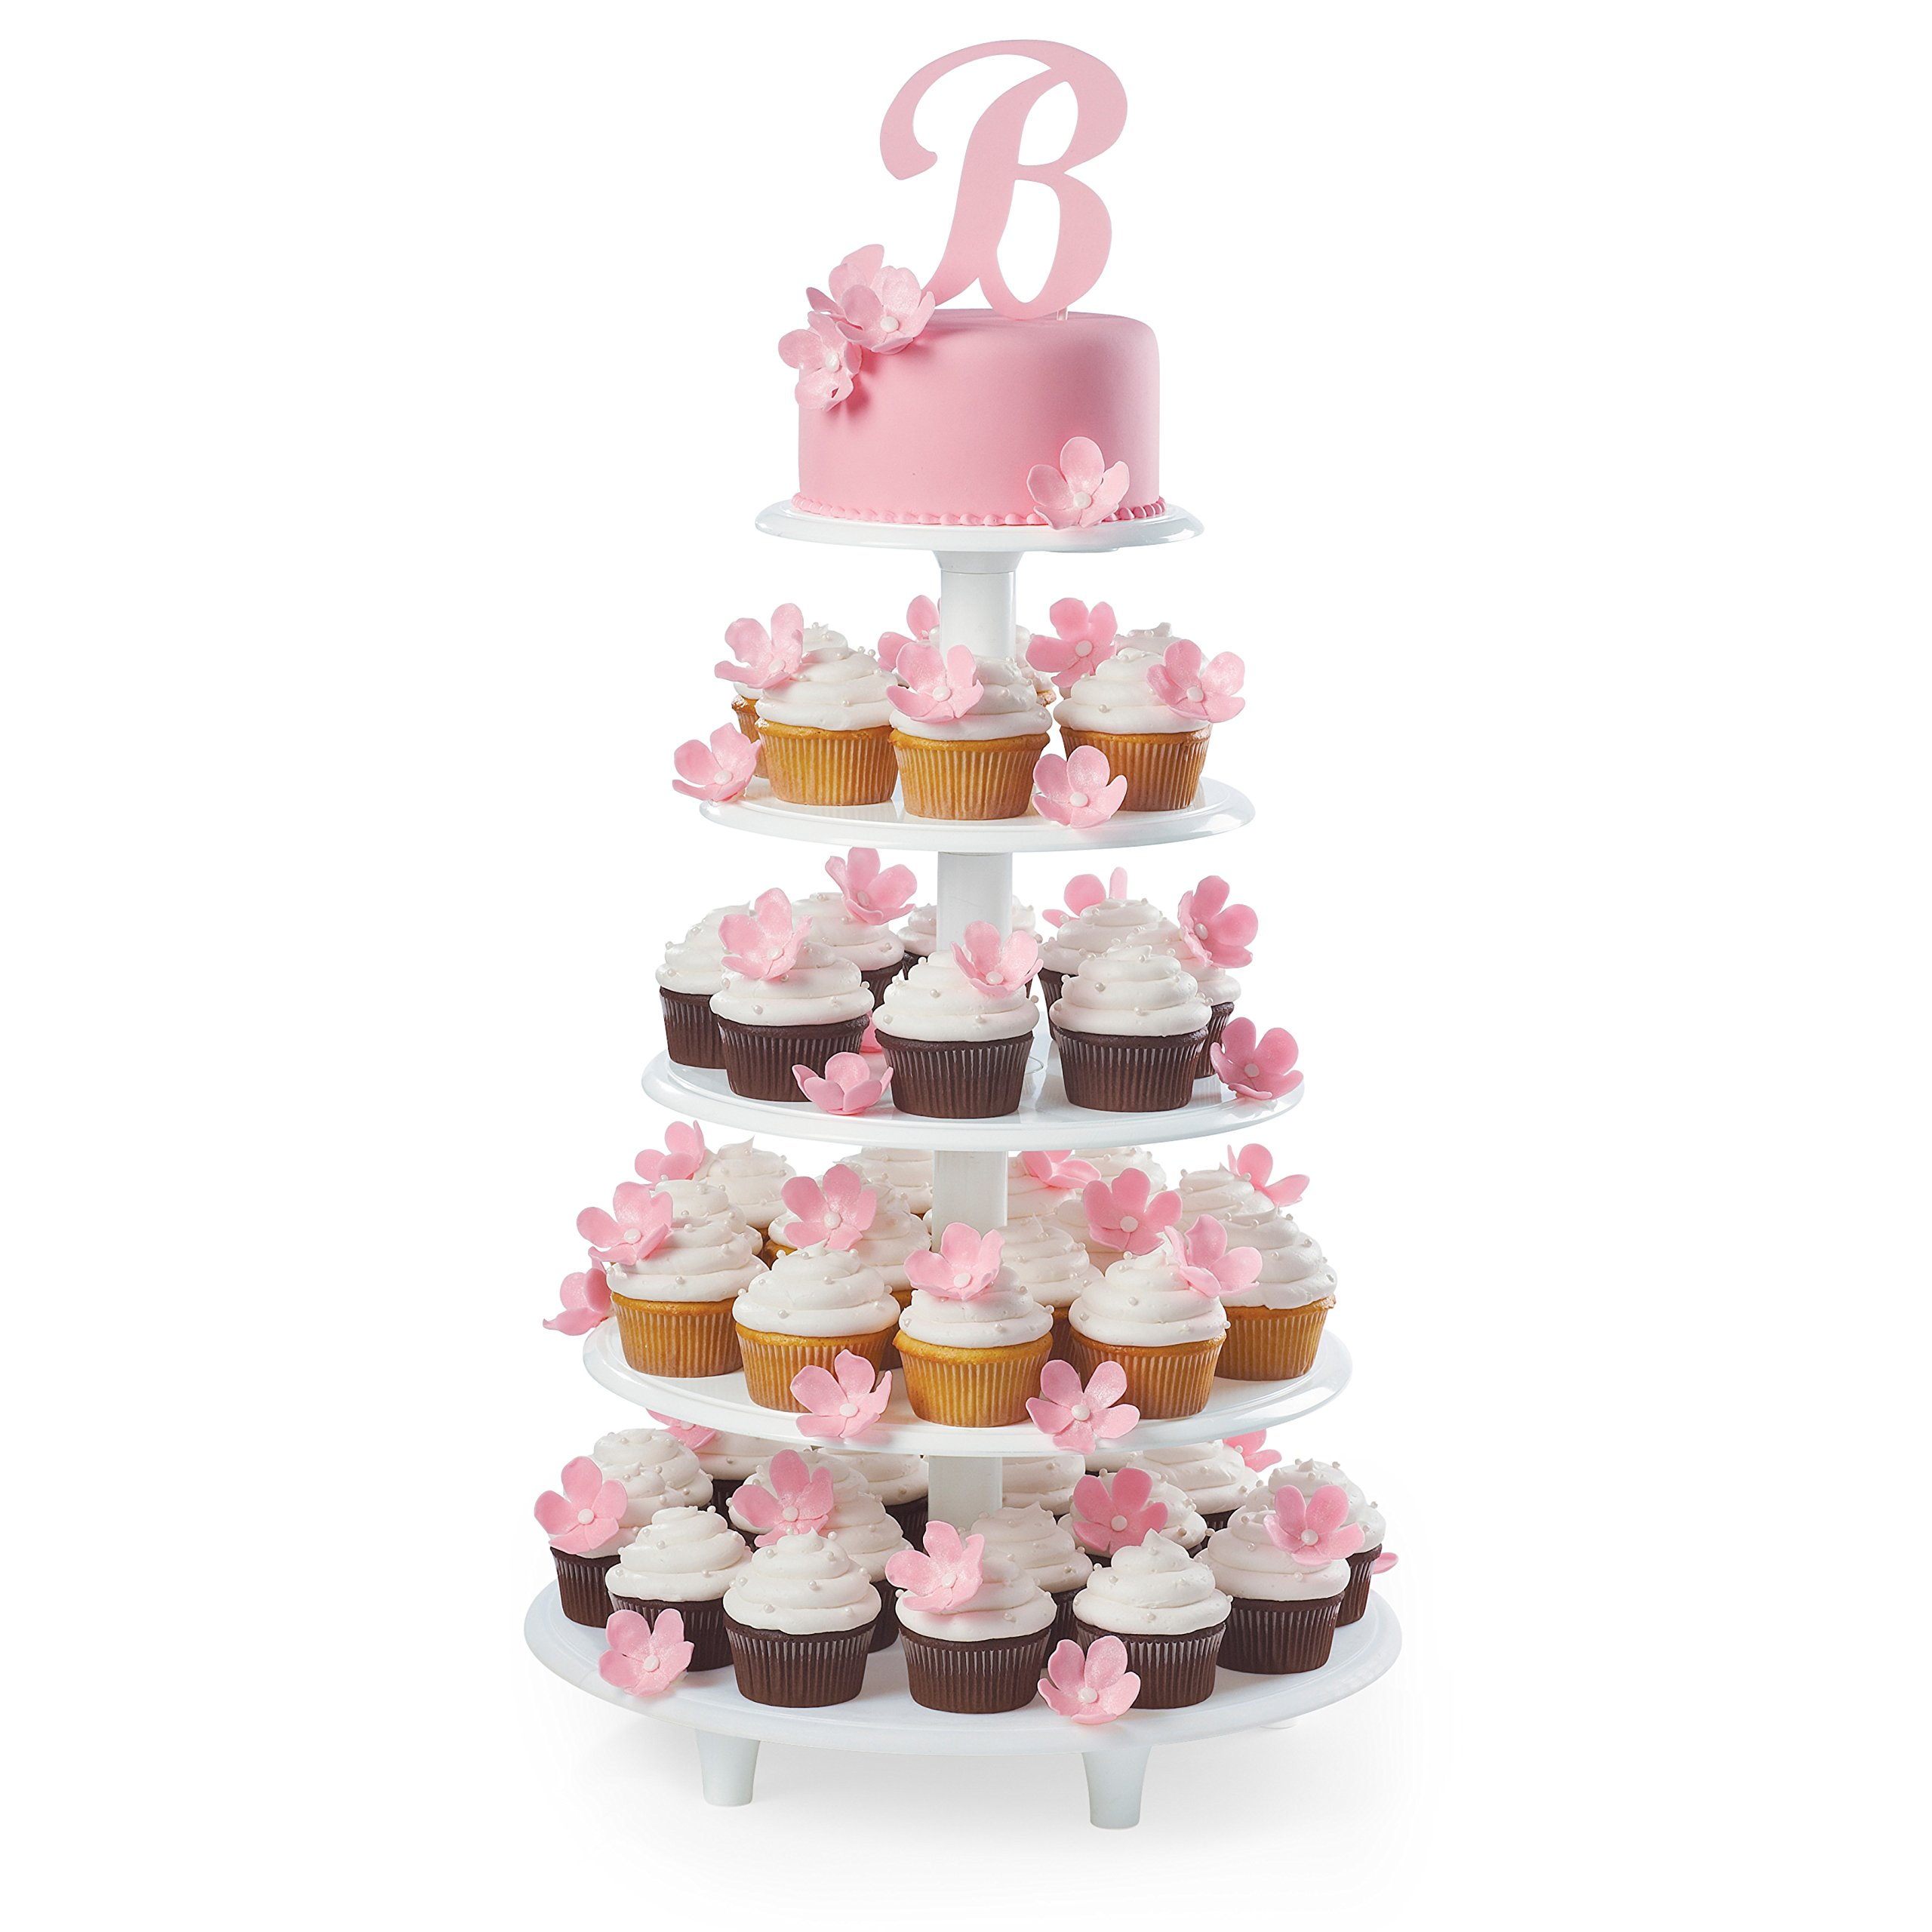 Wilton Towering Tiers Cupcake and Dessert Stand, Great for Displaying Cupcakes, Danishes and Your Favorite Hors d'Oeuvres, White, 3-foot, 28-Piece by Wilton (Image #7)